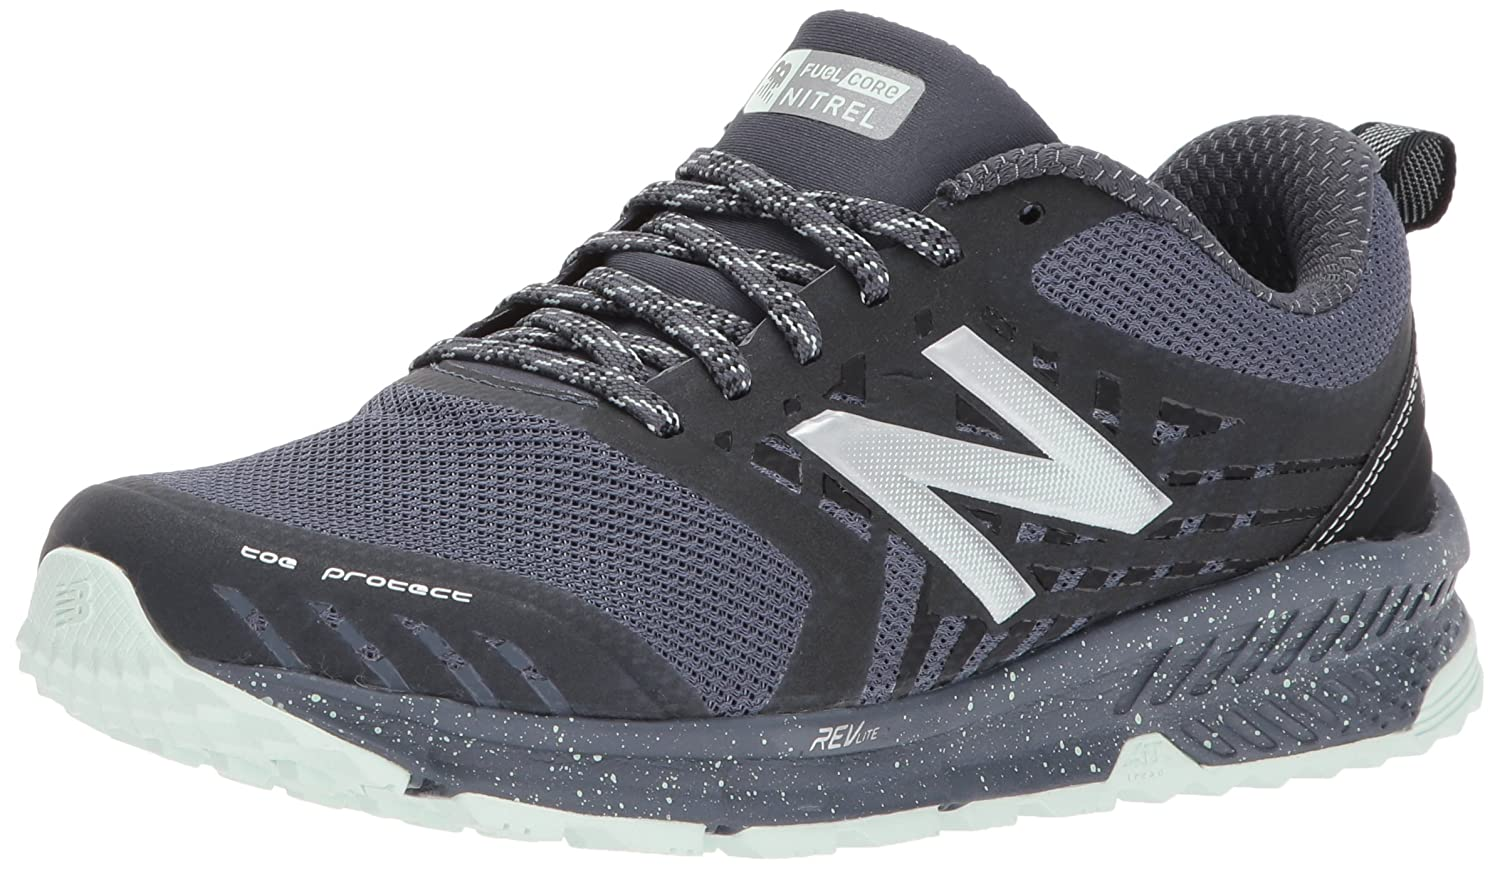 New Balance Women's Nitrel v1 FuelCore Trail Running Shoe B01N5J5B49 5 B(M) US|Grey/Black